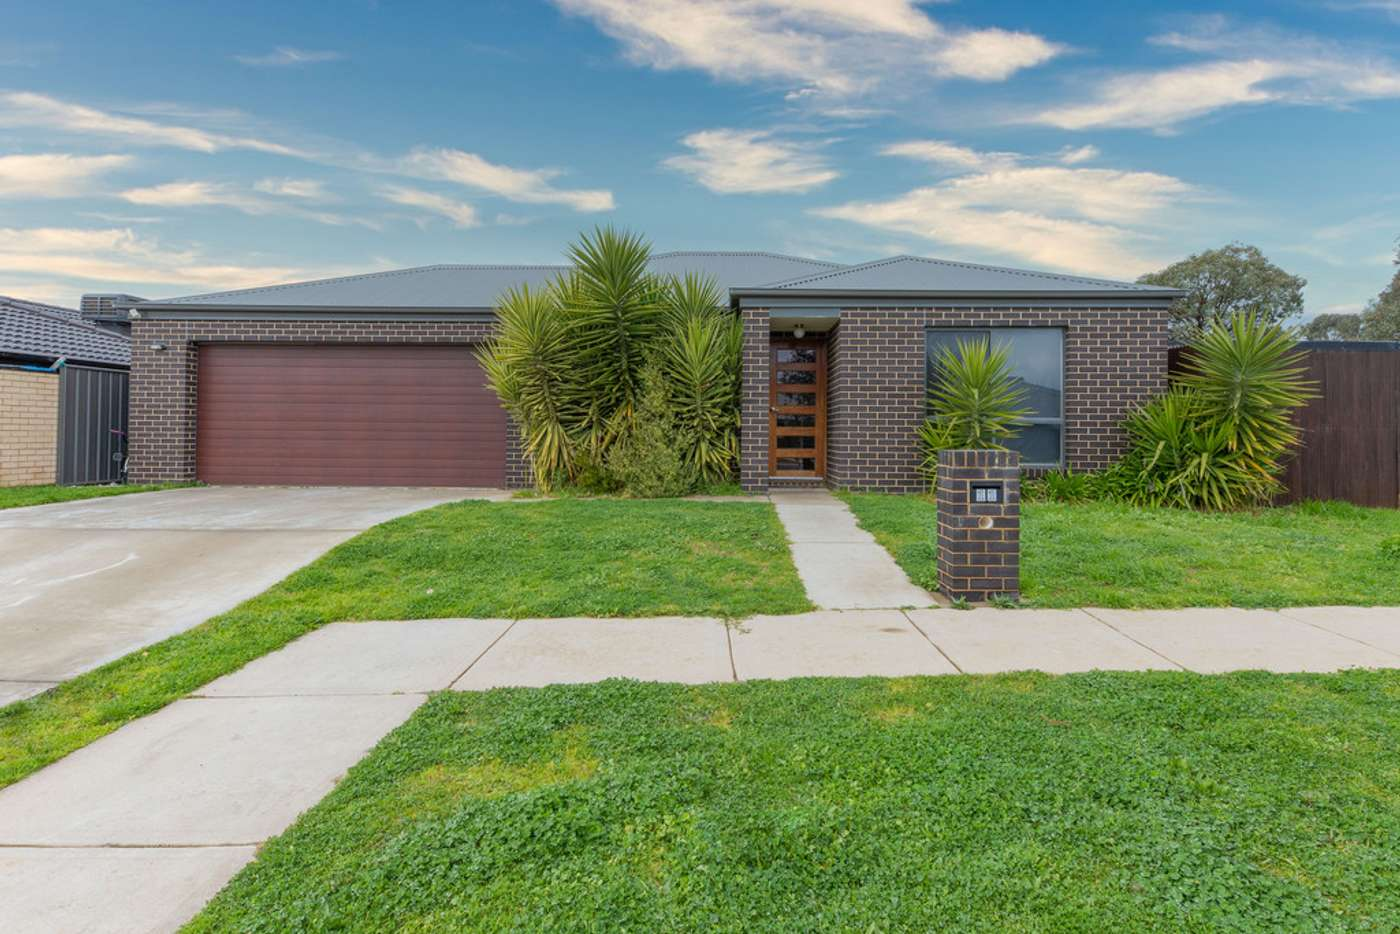 Main view of Homely house listing, 11 McAuliffe Street, Wodonga VIC 3690